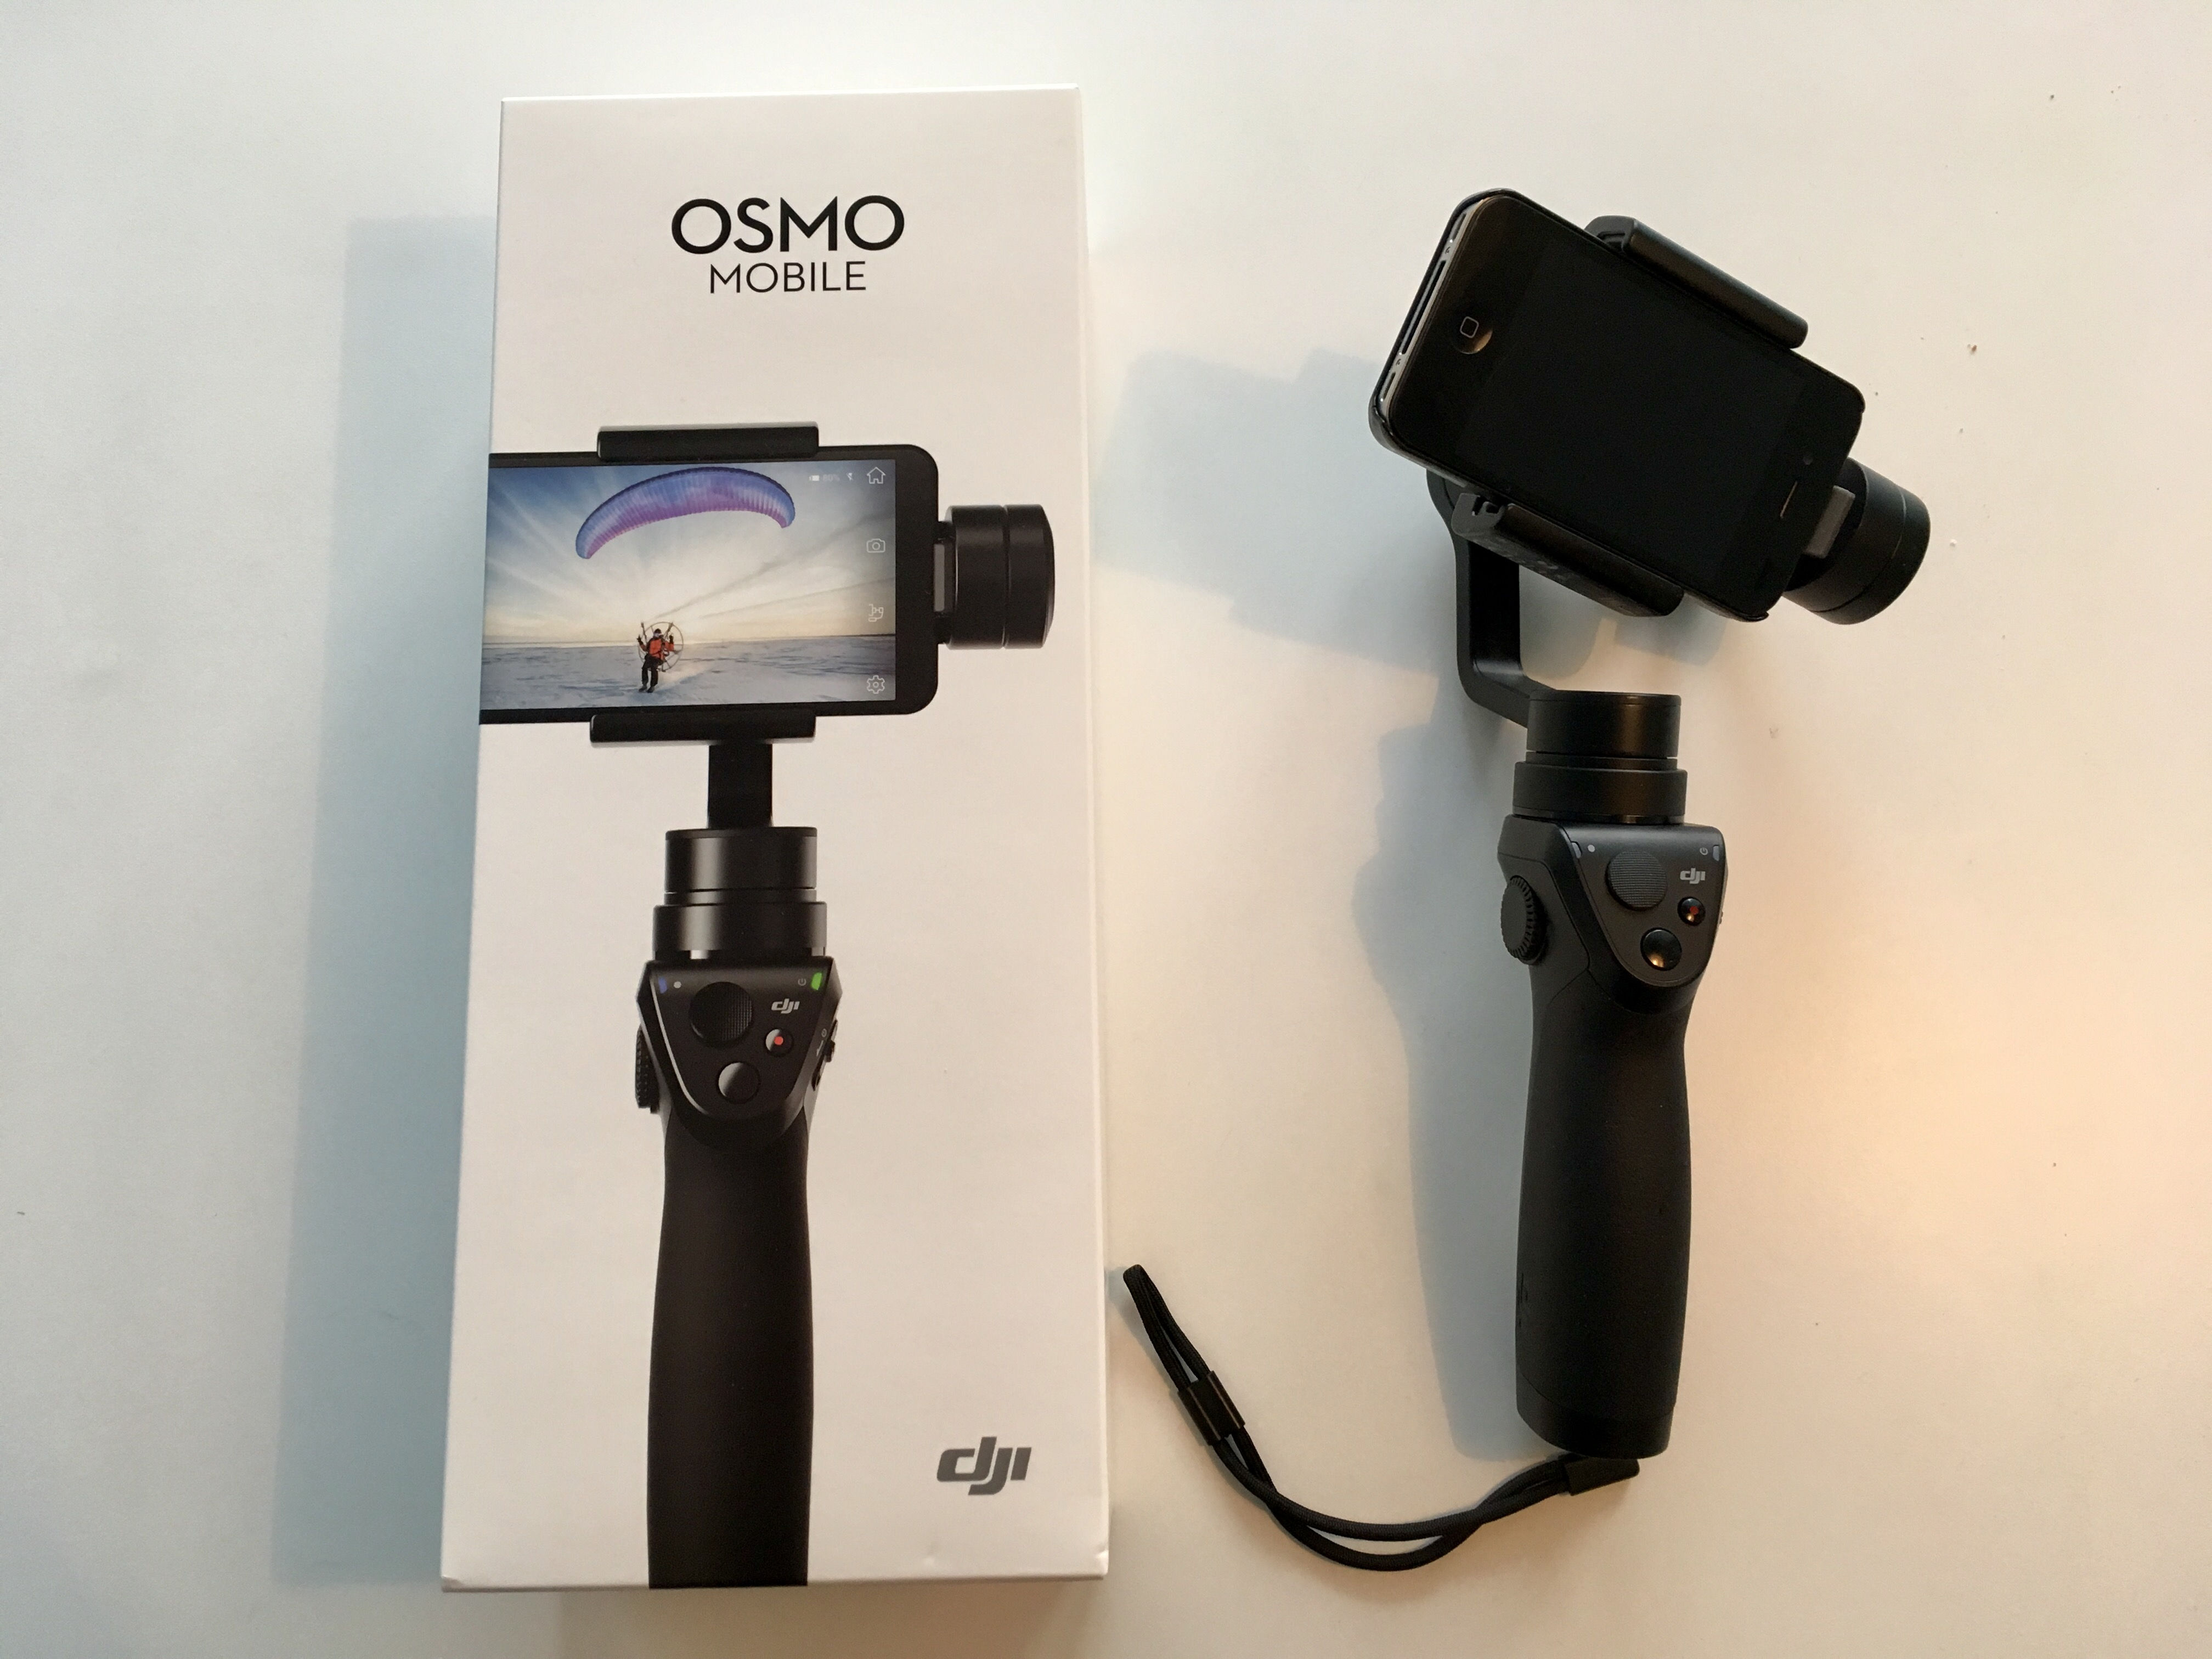 Dji Osmo Mobile Bread4life Free Base My Gimbal Was About 300 Euro I Bought An Extra Battery For 30 Time Is Good And Lasted Two Days When Took Shots